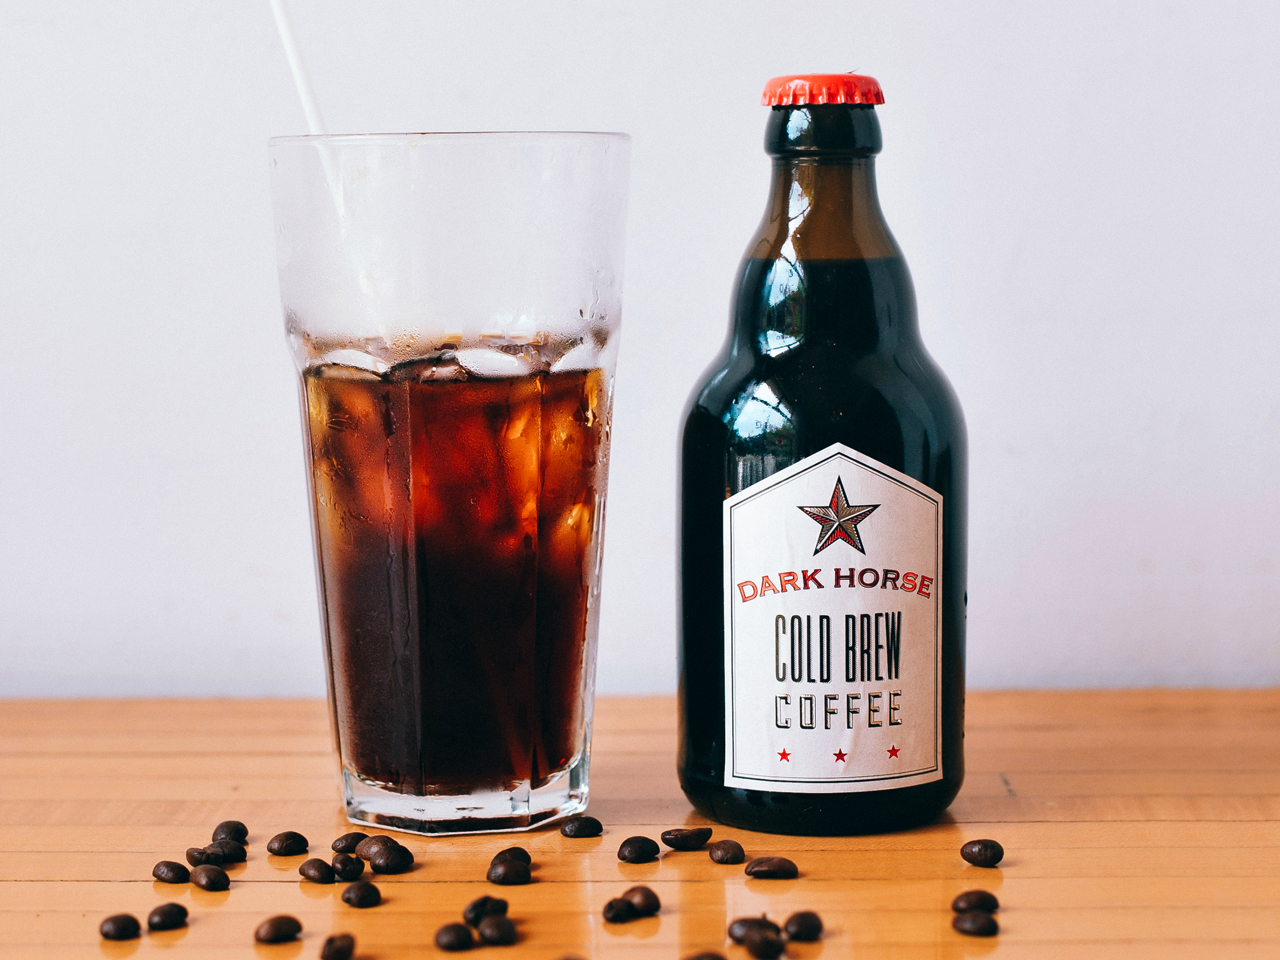 Bottled cold brew coffee: Dark Horse Coffee